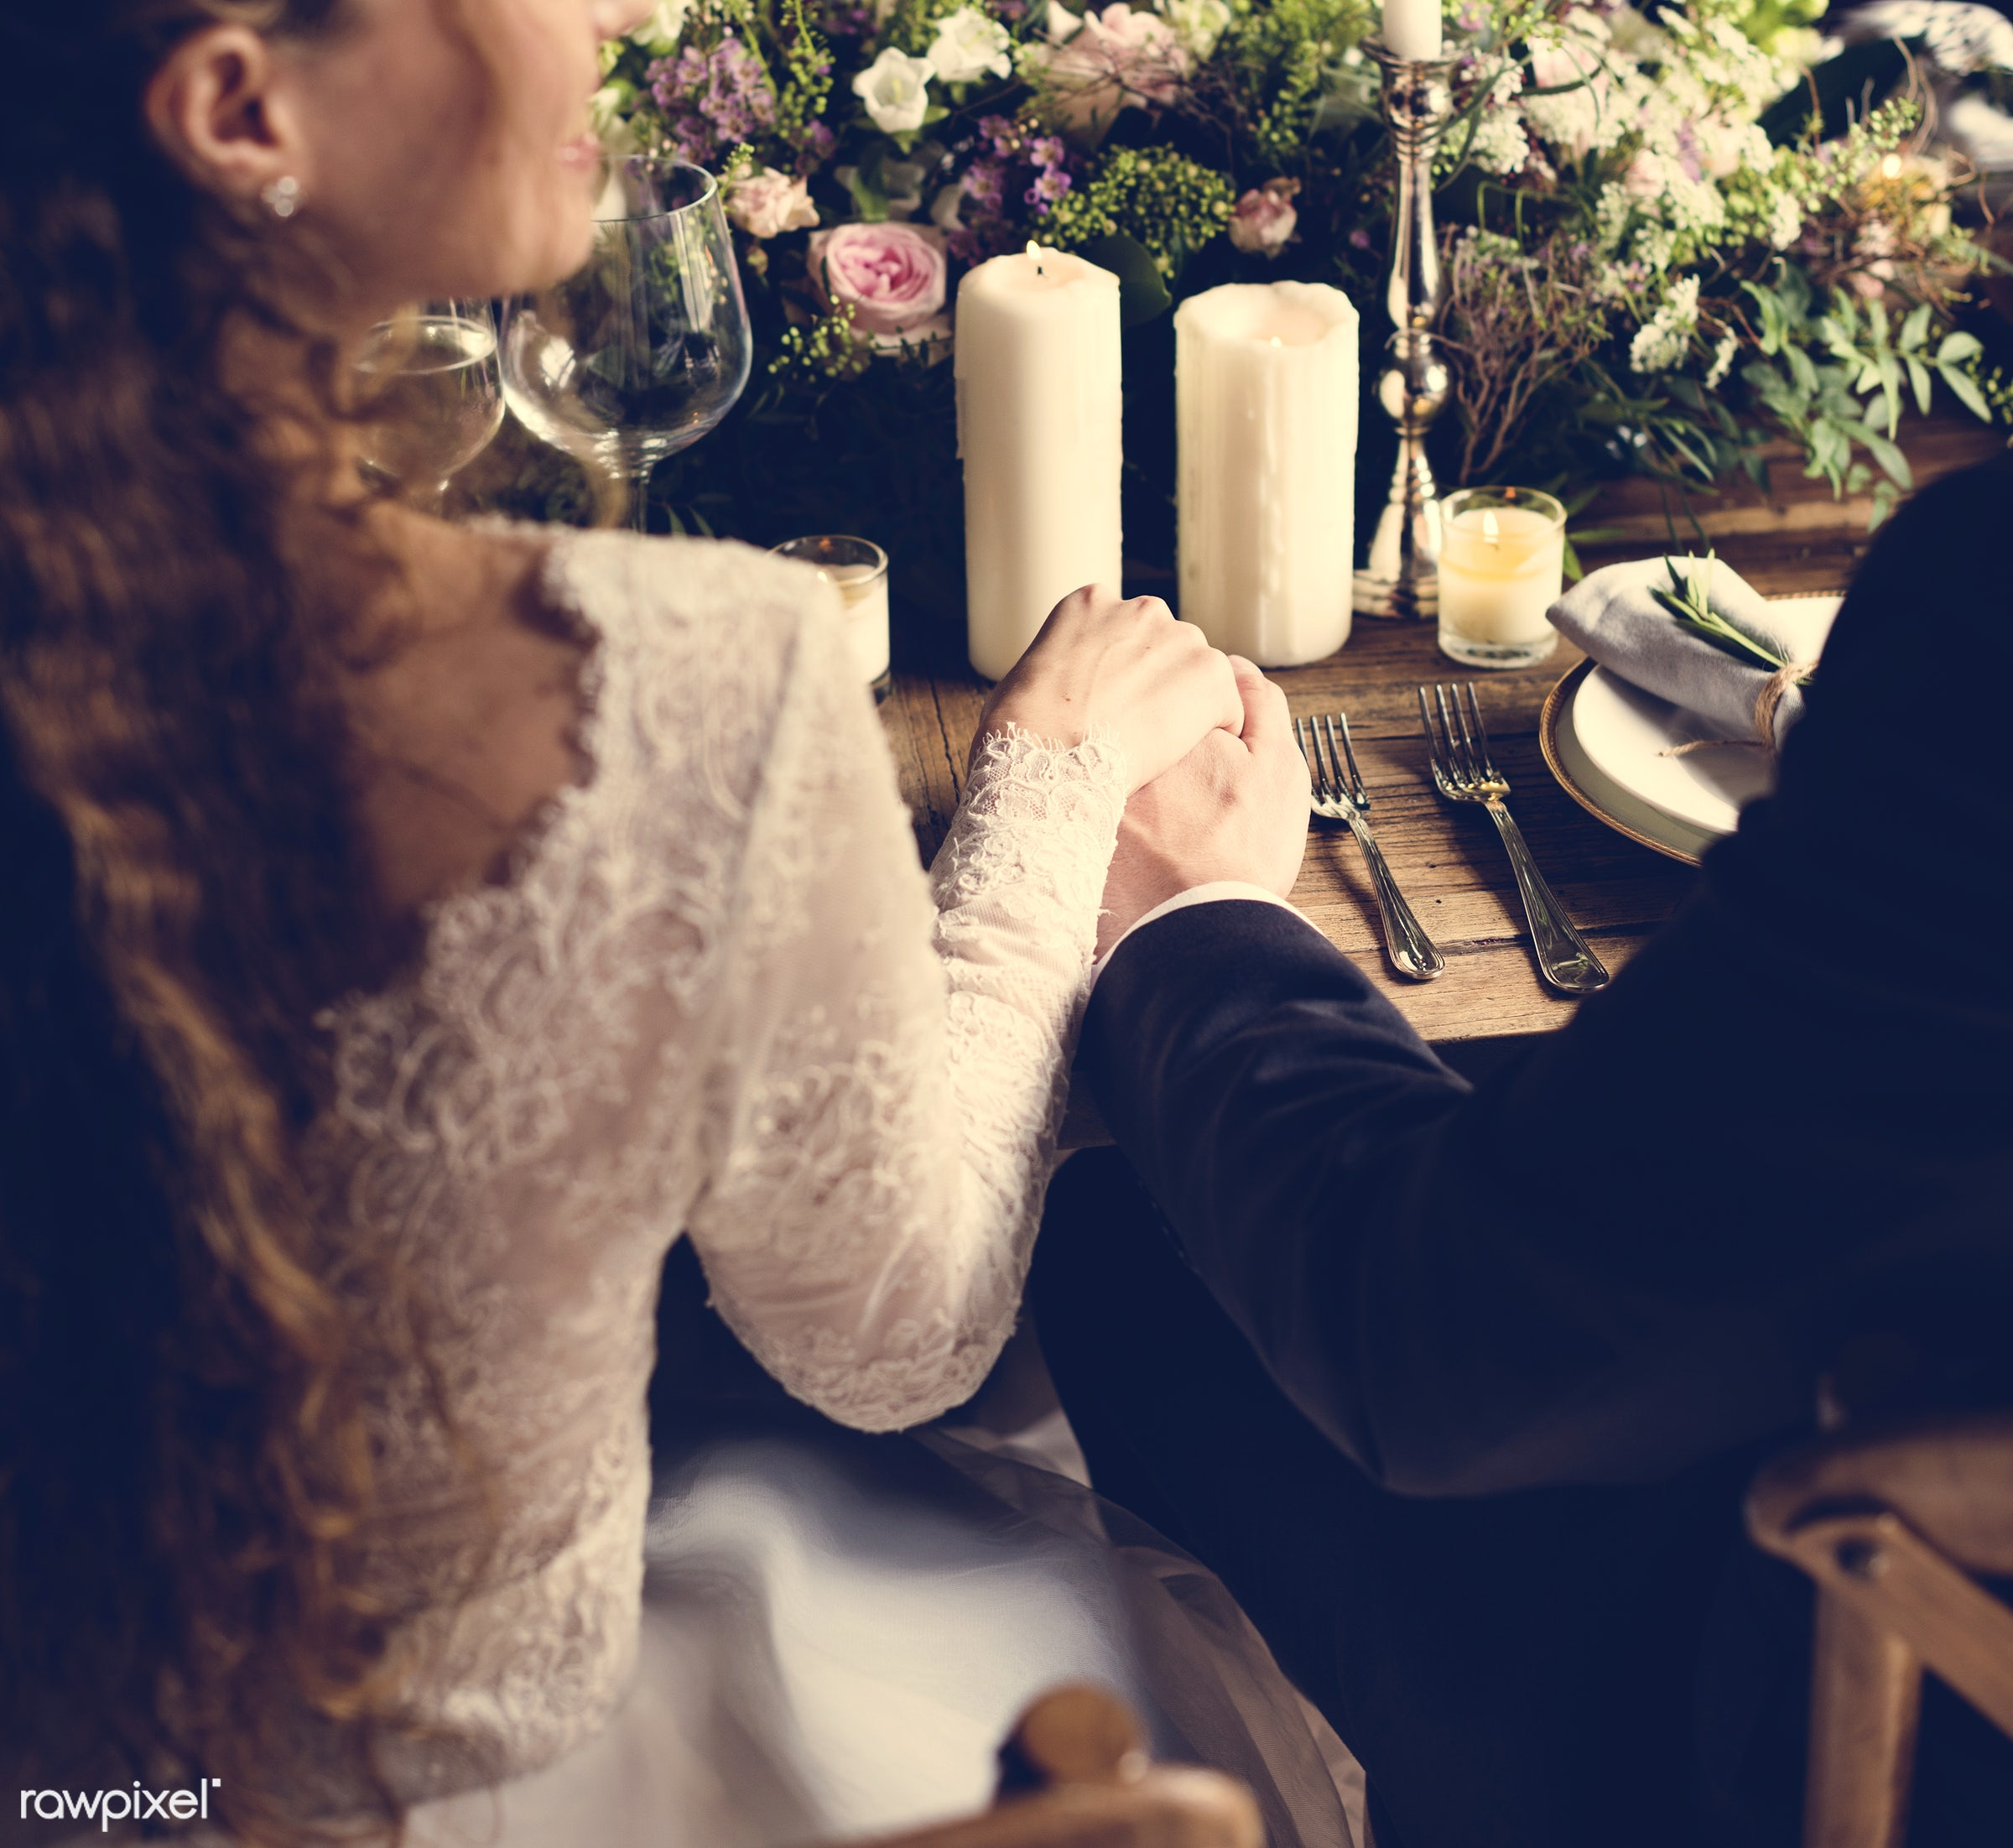 expression, person, husband, congratulations, people, together, love, married, congrats, hands, woman, gather, drink, glass...